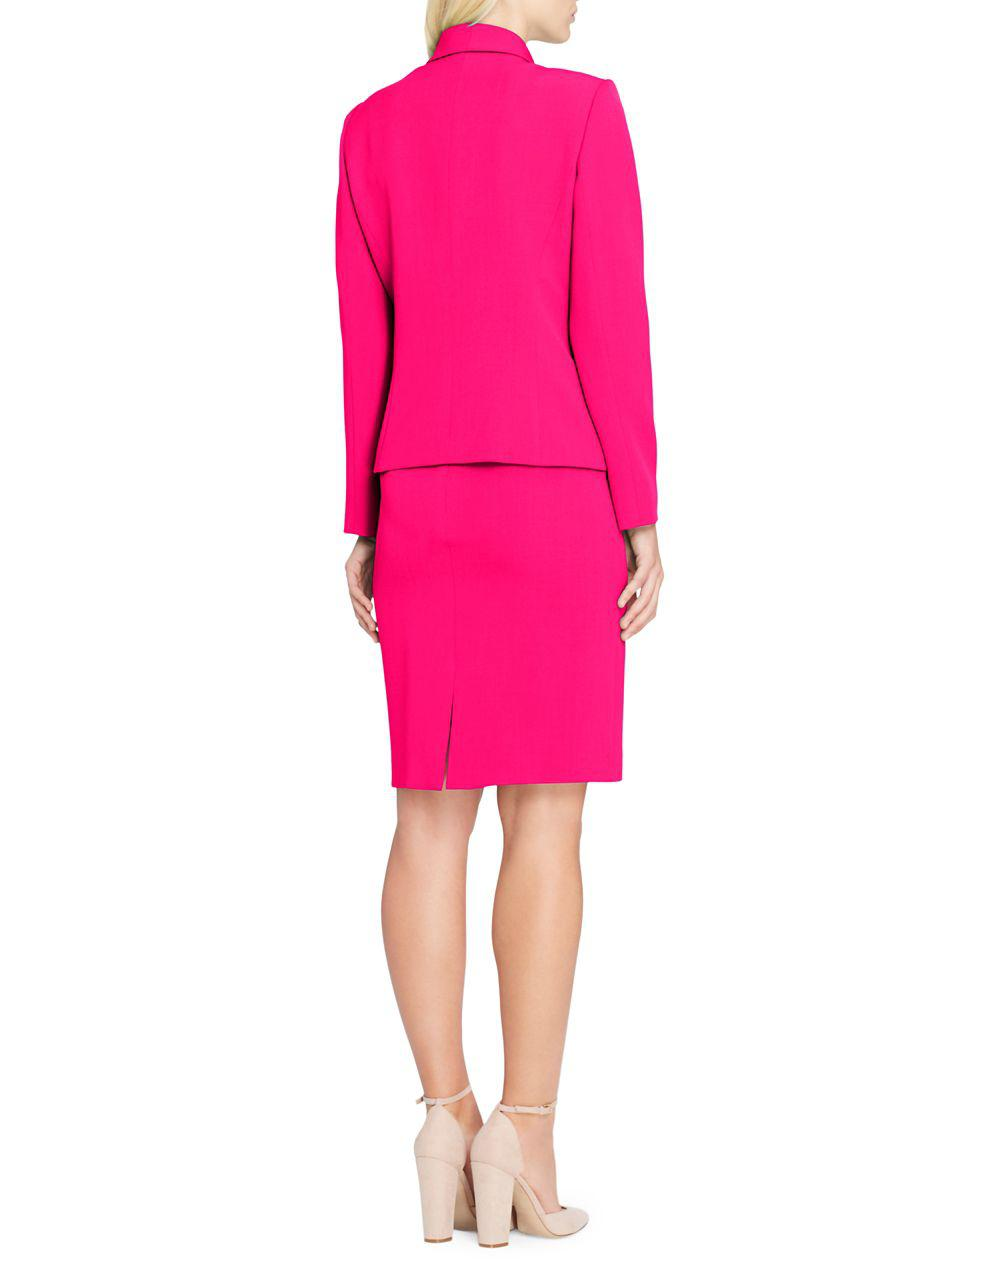 4892173a96cb Tahari Petite Assymetrical Button Jacket And Skirt Suit in Pink - Lyst